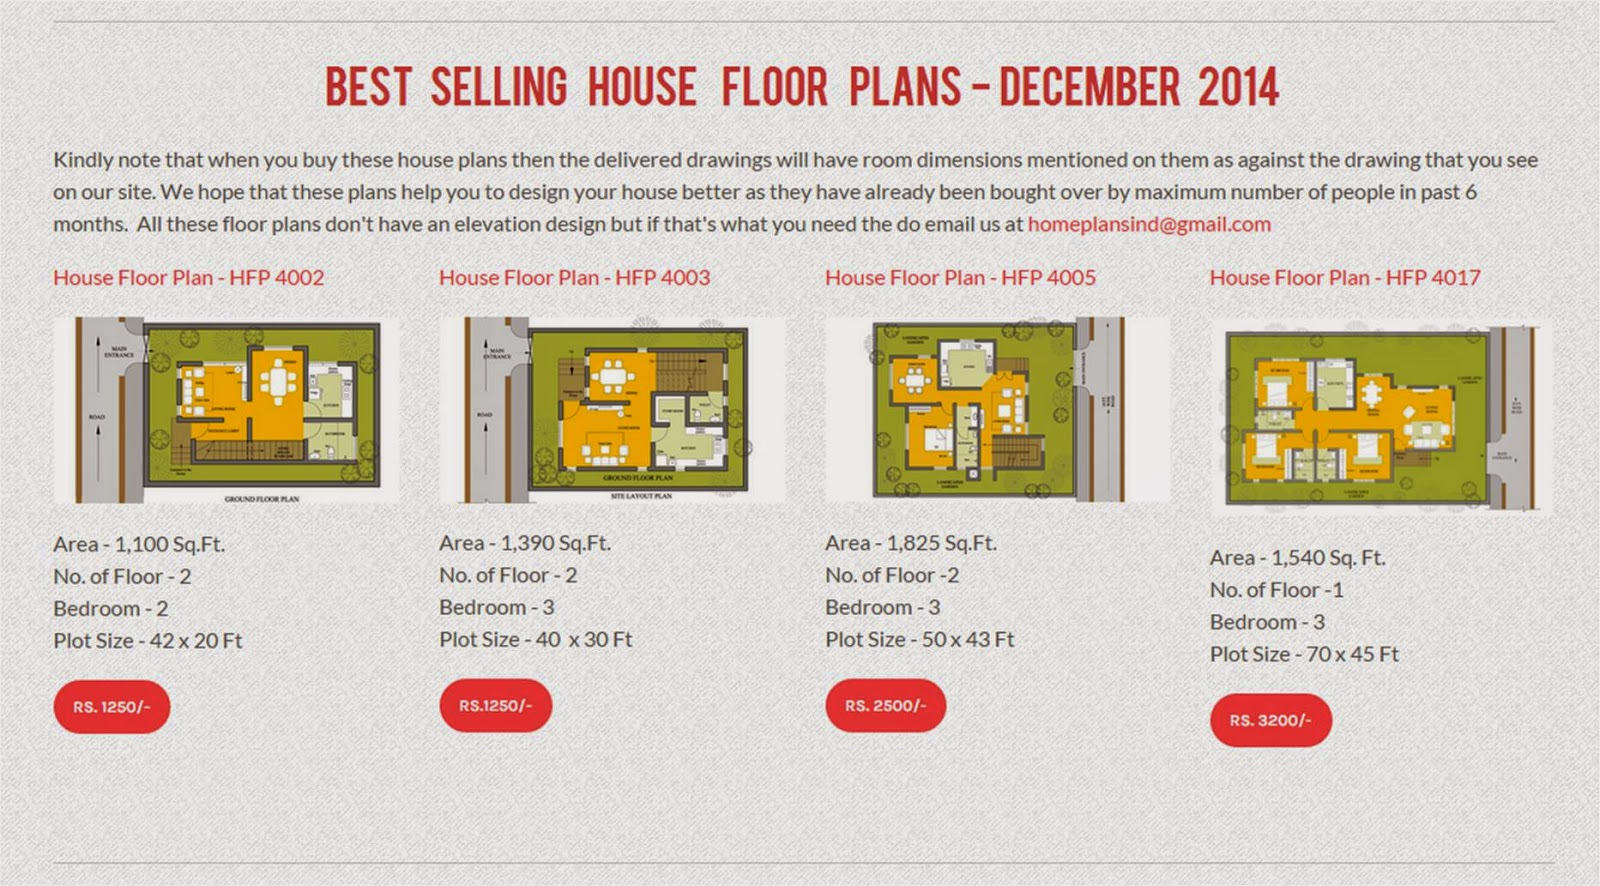 Best Selling House Floor Plans on HomePlansIndia in December 2014